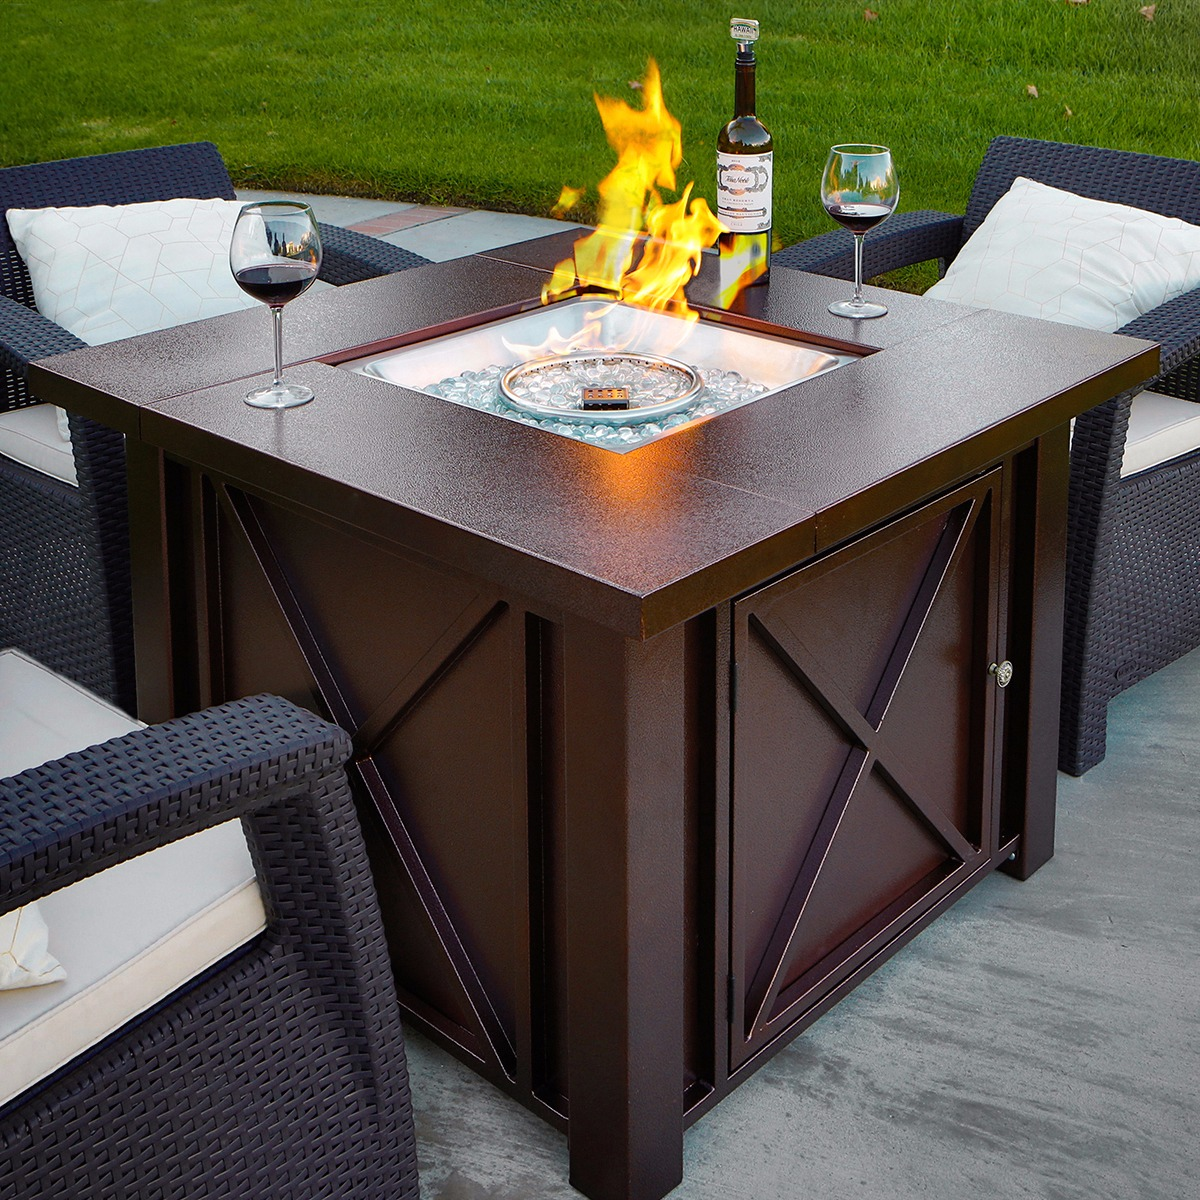 Outdoor Gas Fireplaces Details About New Lpg Fire Pit Table Outdoor Gas Fireplace Propane Heater Patio Backyard Deck